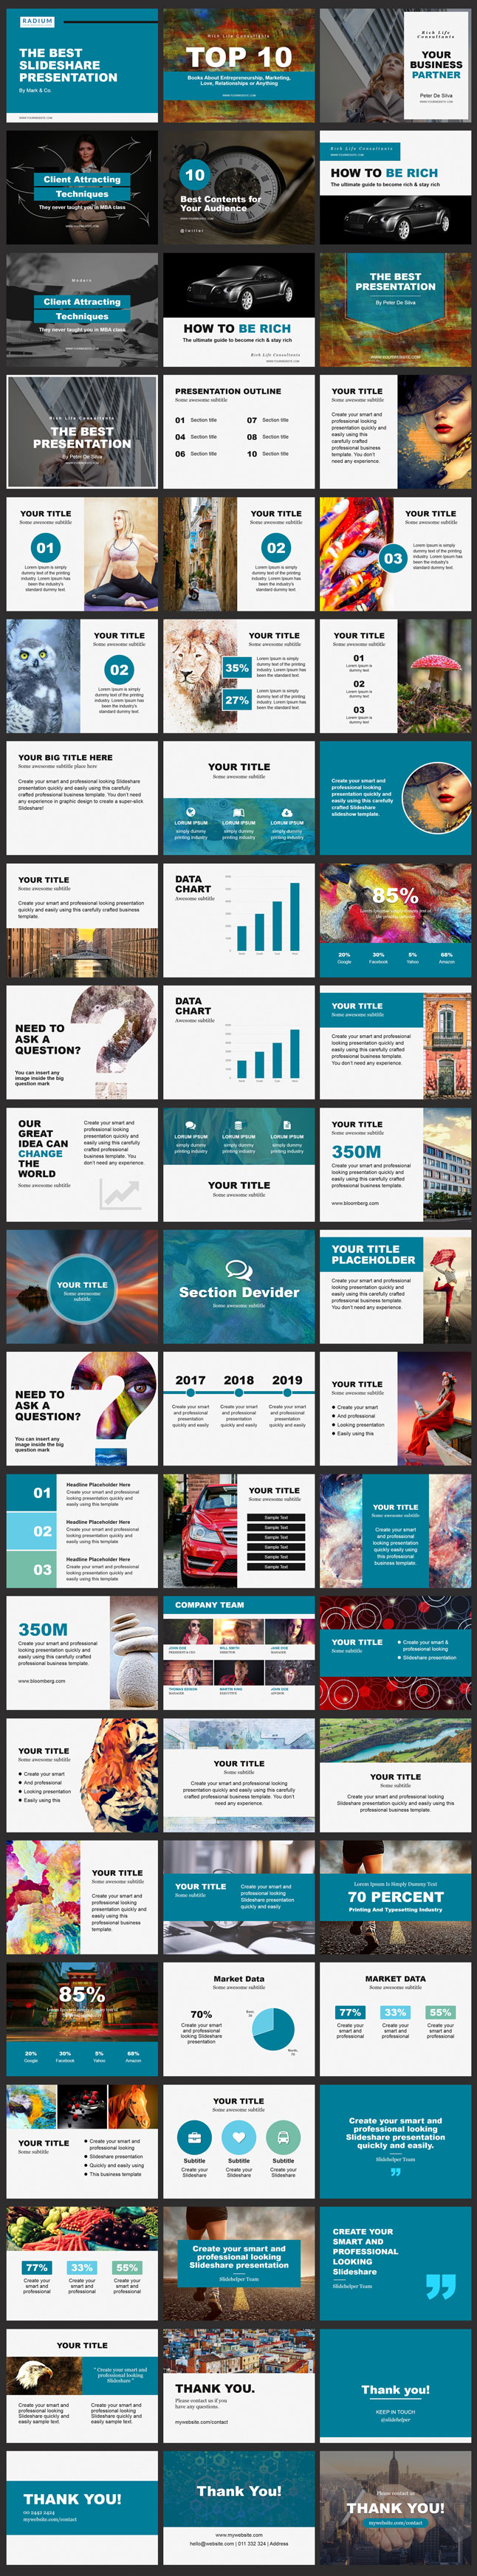 Slideshare PowerPoint template blue color